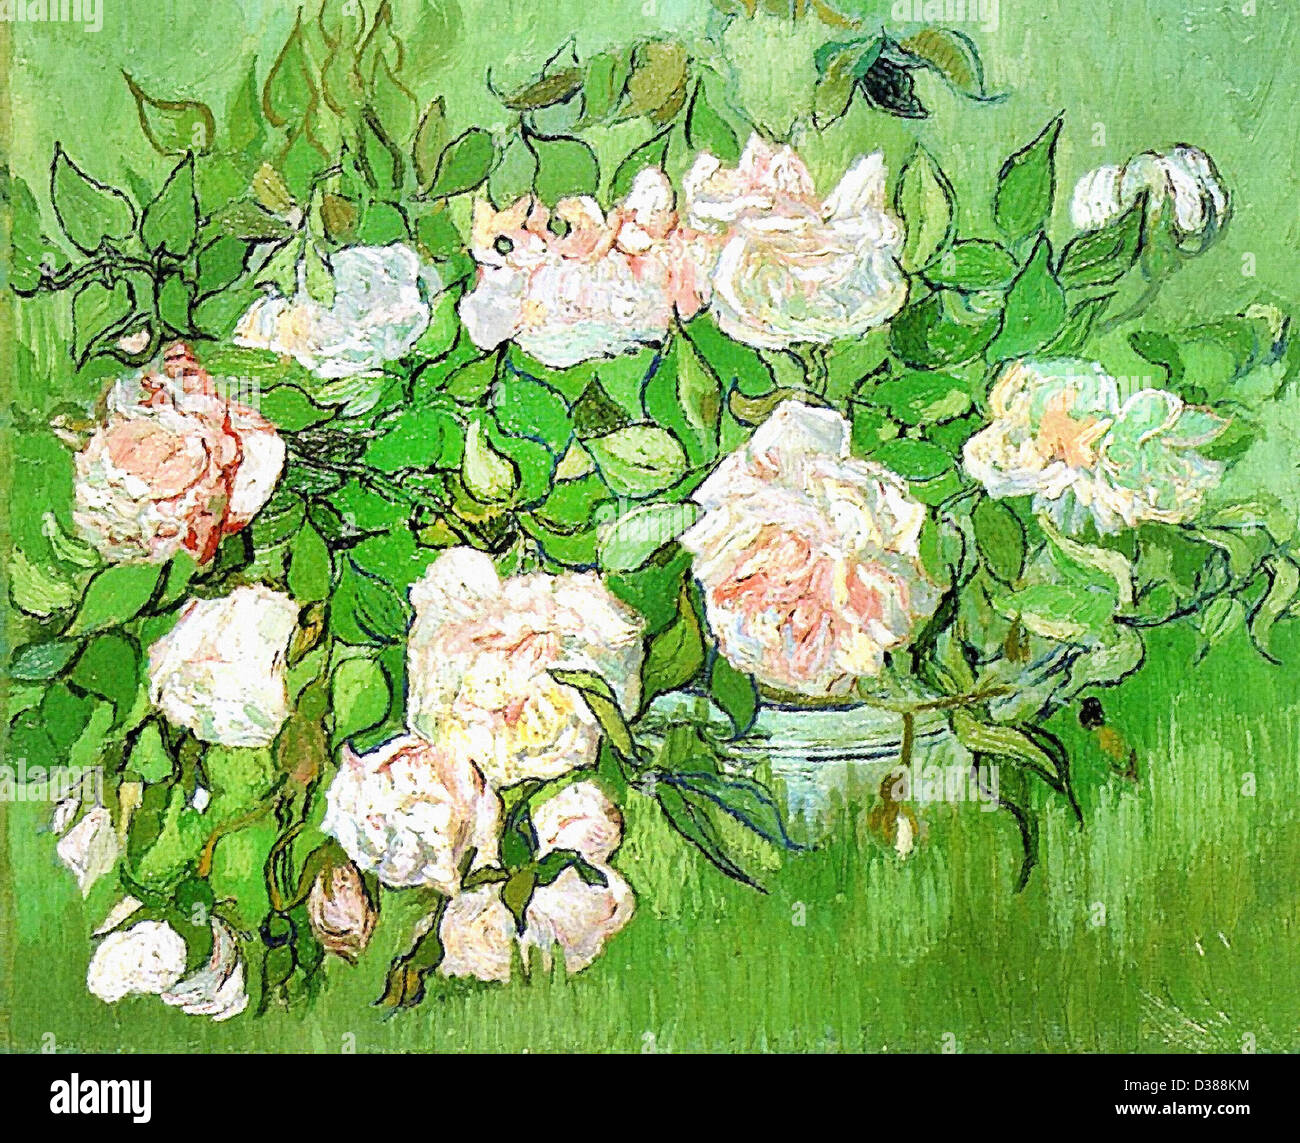 Vincent van gogh still life pink roses 1890 post vincent van gogh still life pink roses 1890 post impressionism oil on canvas ny carlsberg glyptotek copenhagen denmark reviewsmspy